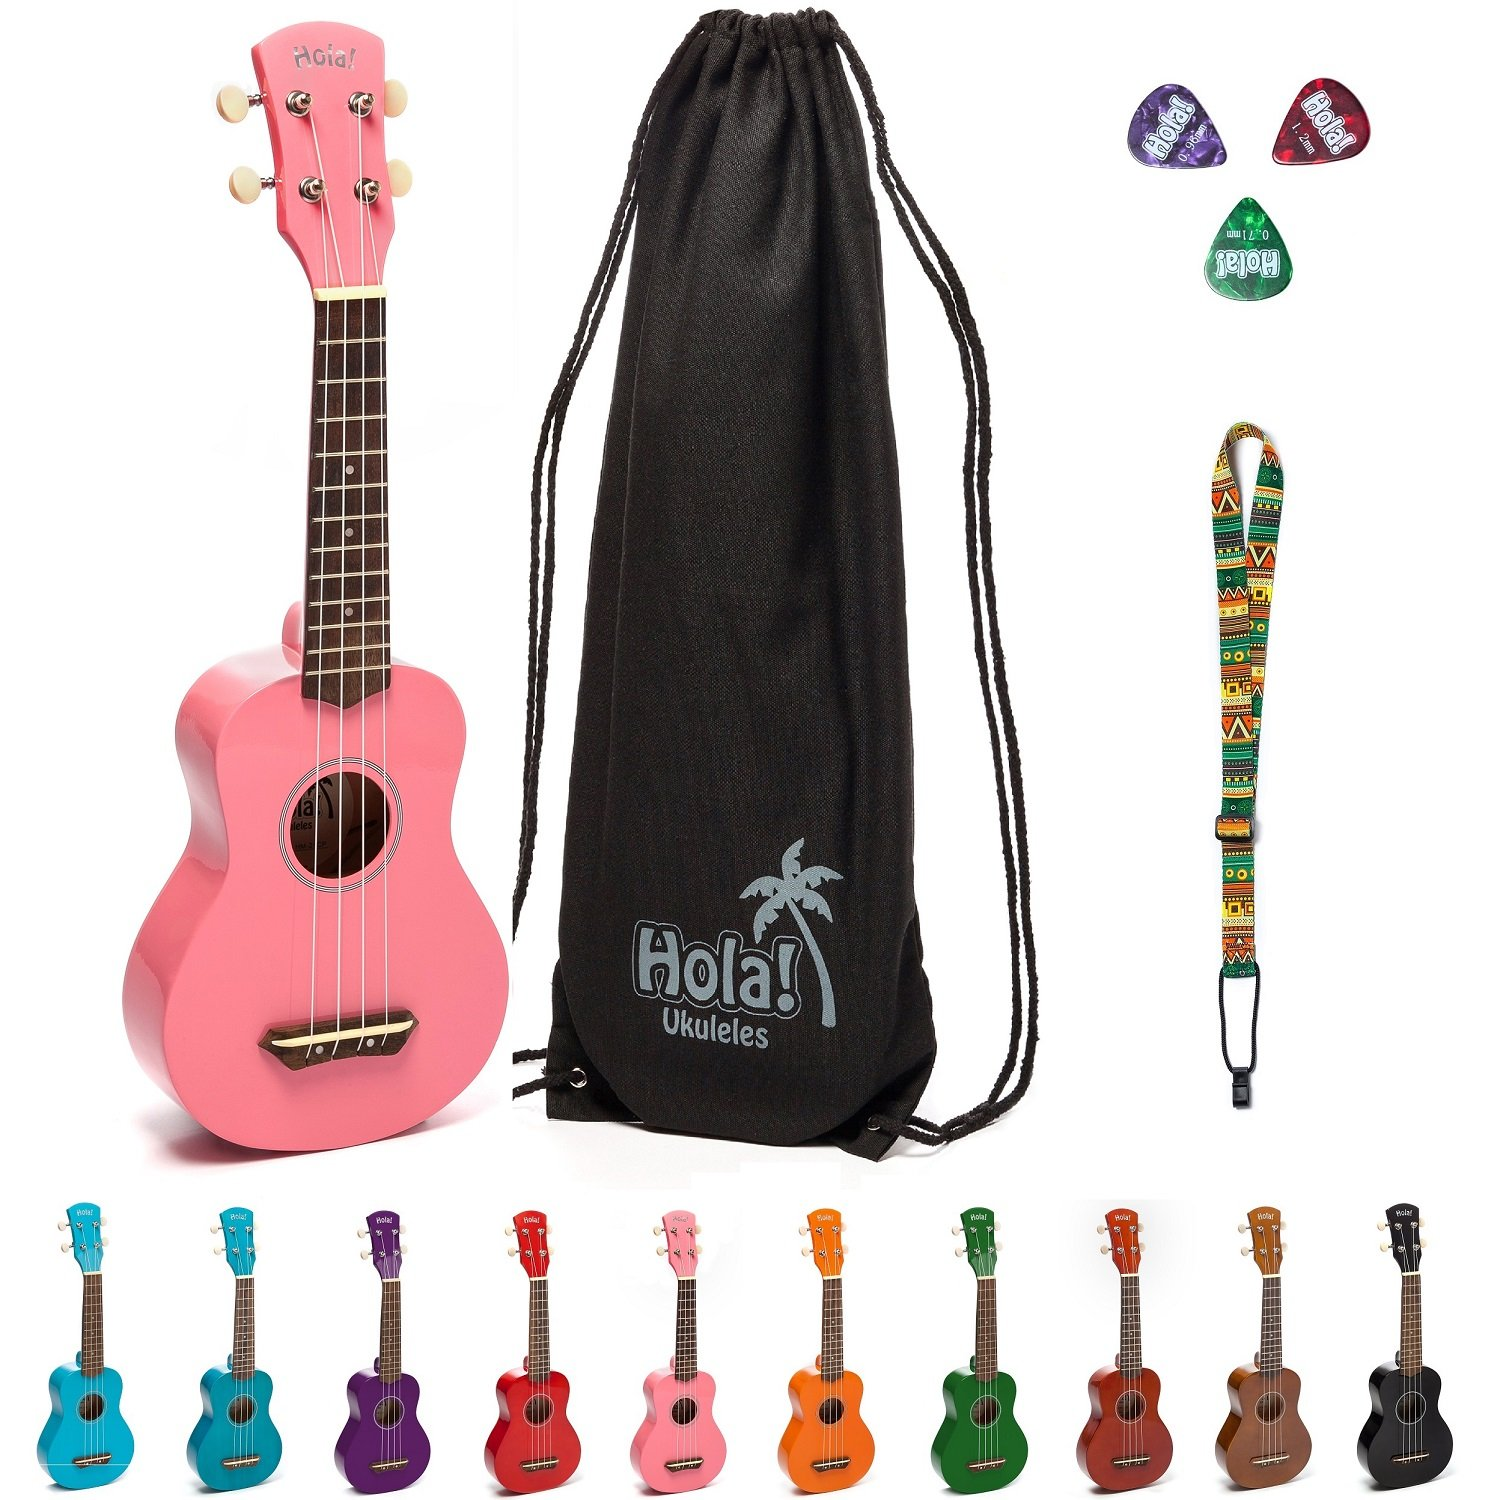 Hola! Music HM-21PK Soprano Ukulele Bundle with Canvas Tote Bag, Strap and Picks, Color Series, Pink HM-21CP